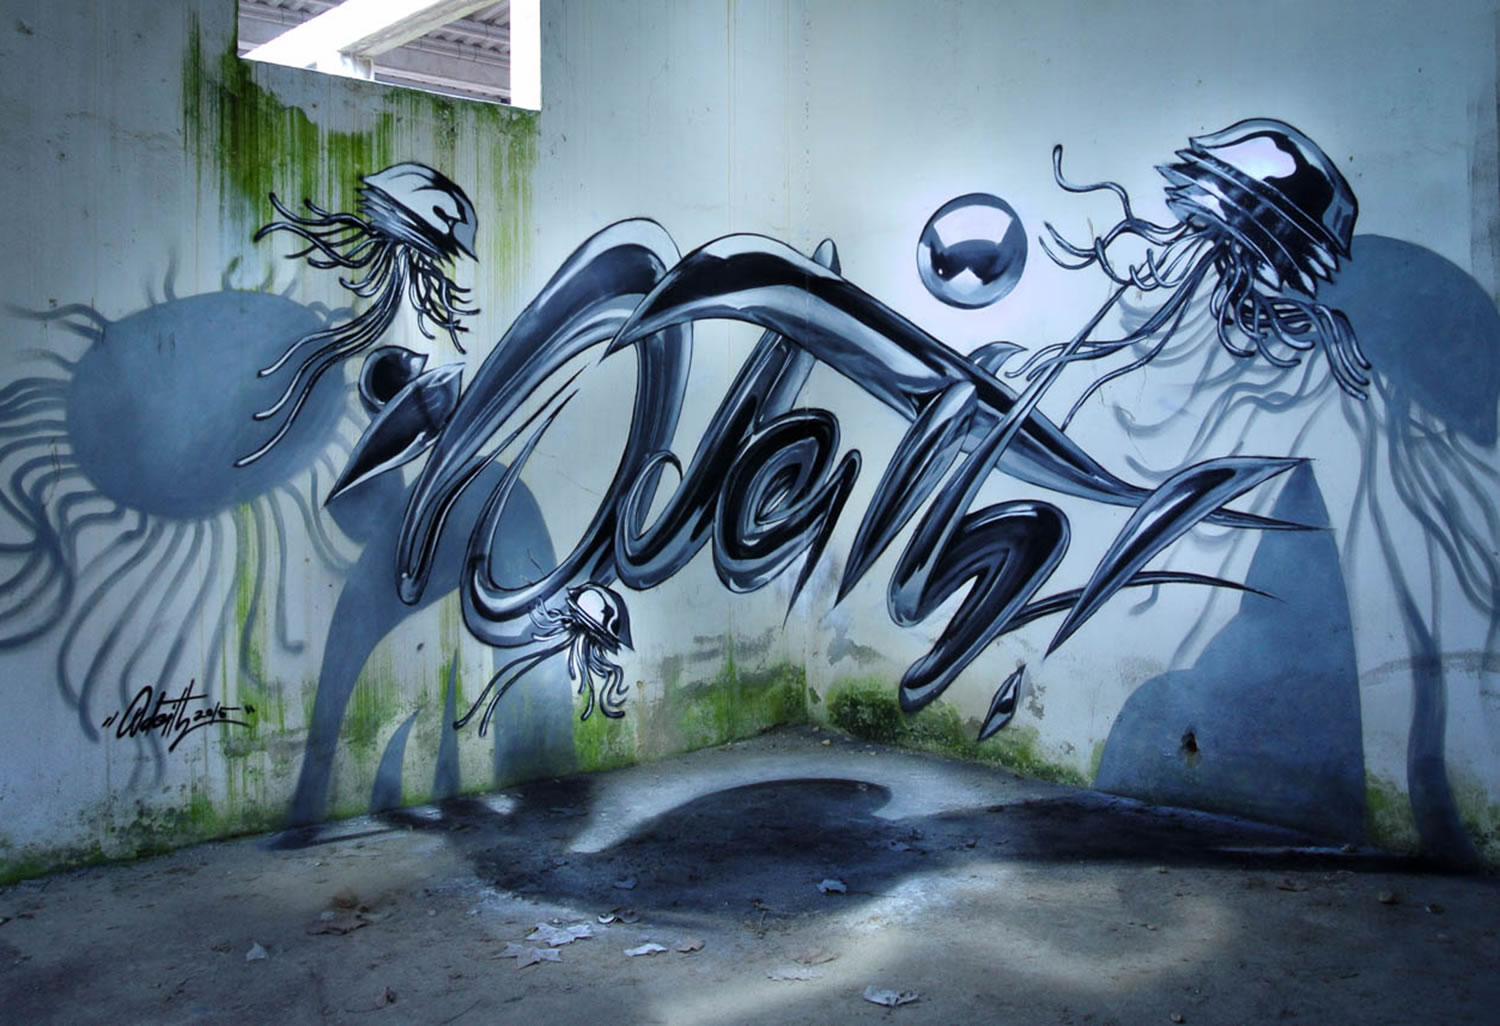 alien 3d graffiti